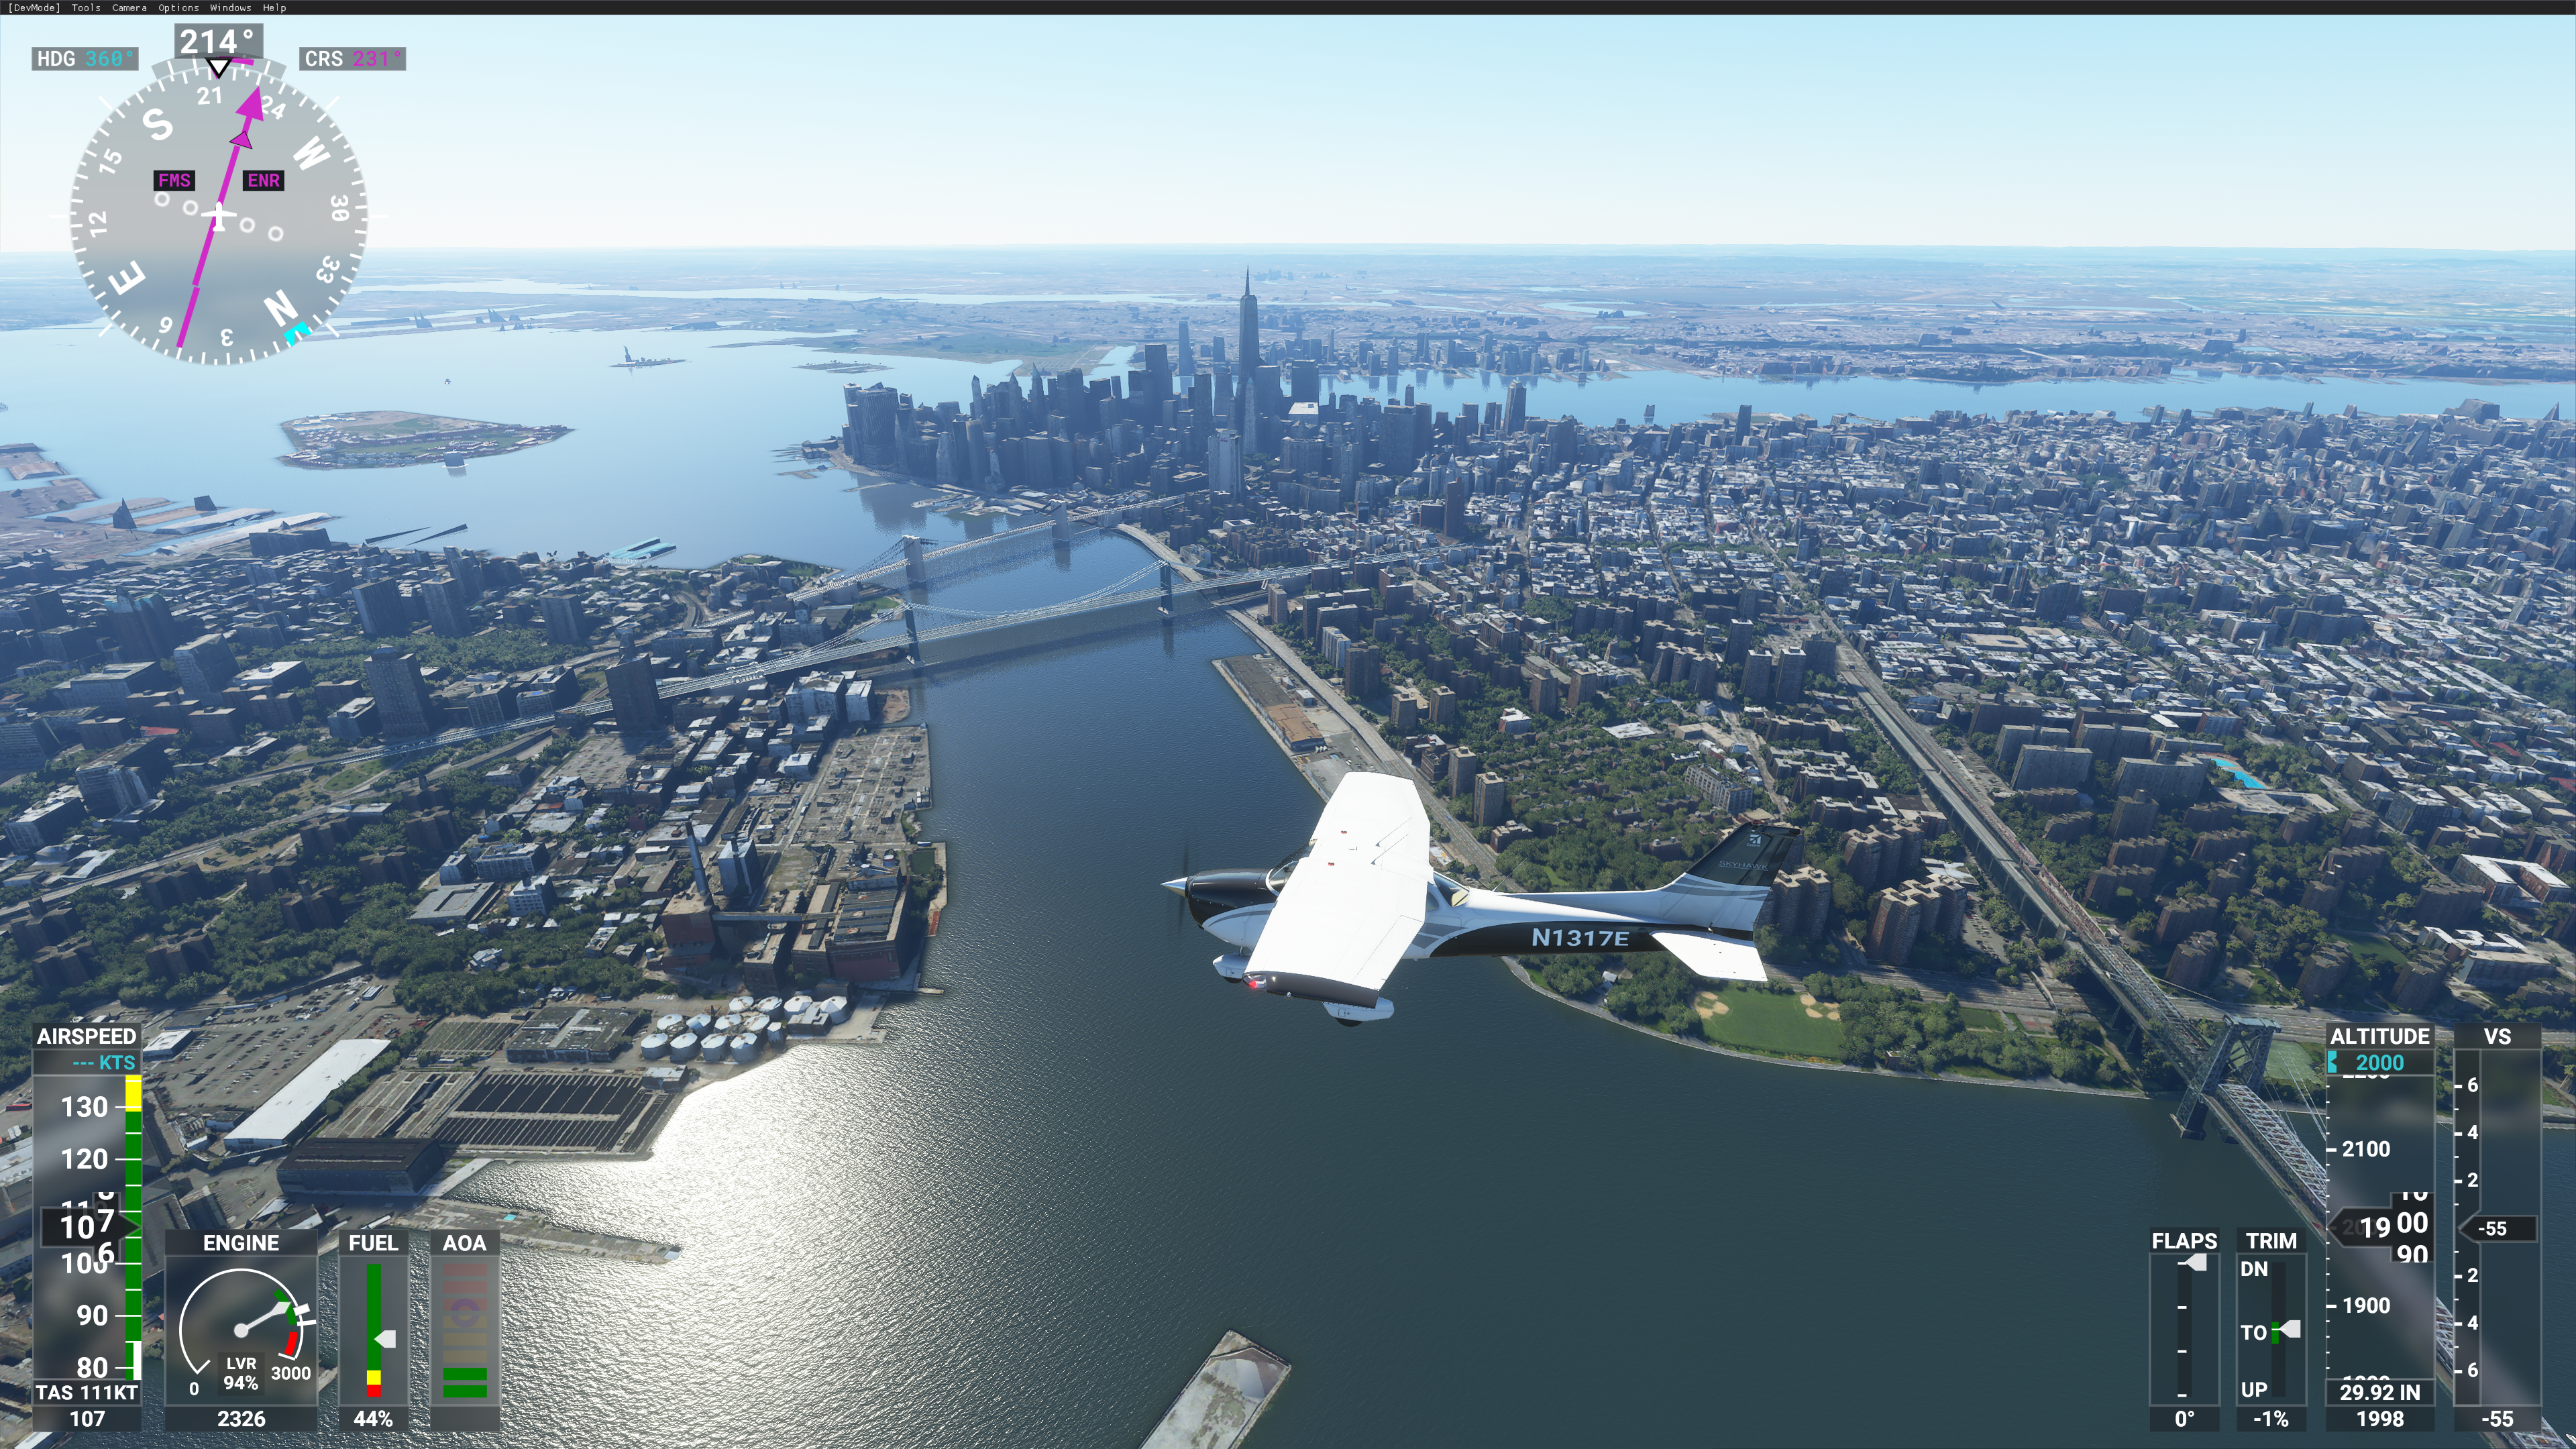 For comparison, here is lower Manhattan